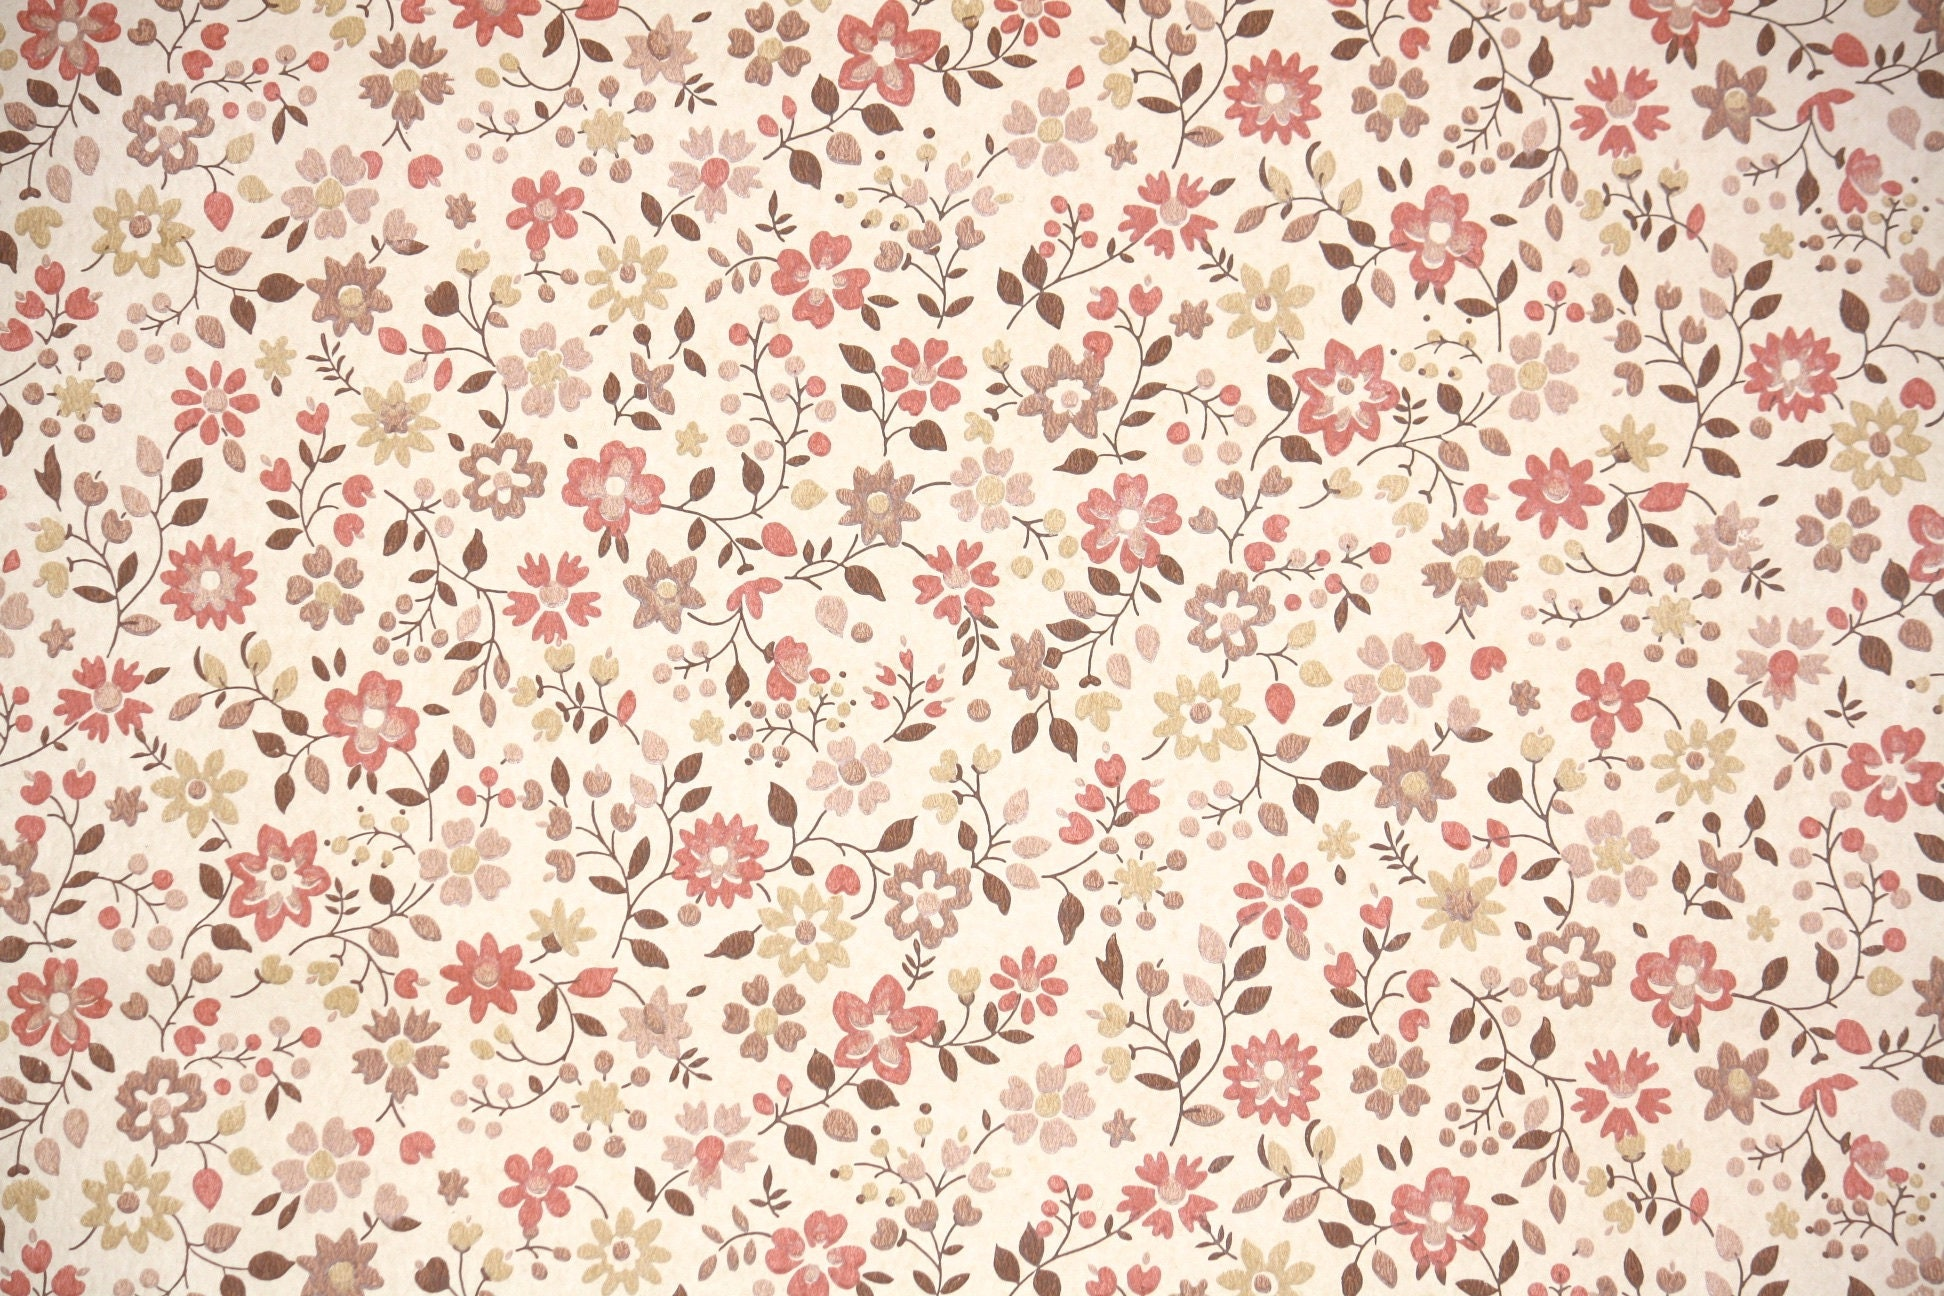 1970s Vintage Wallpaper By The Yard Retro Floral Wallpaper Etsy